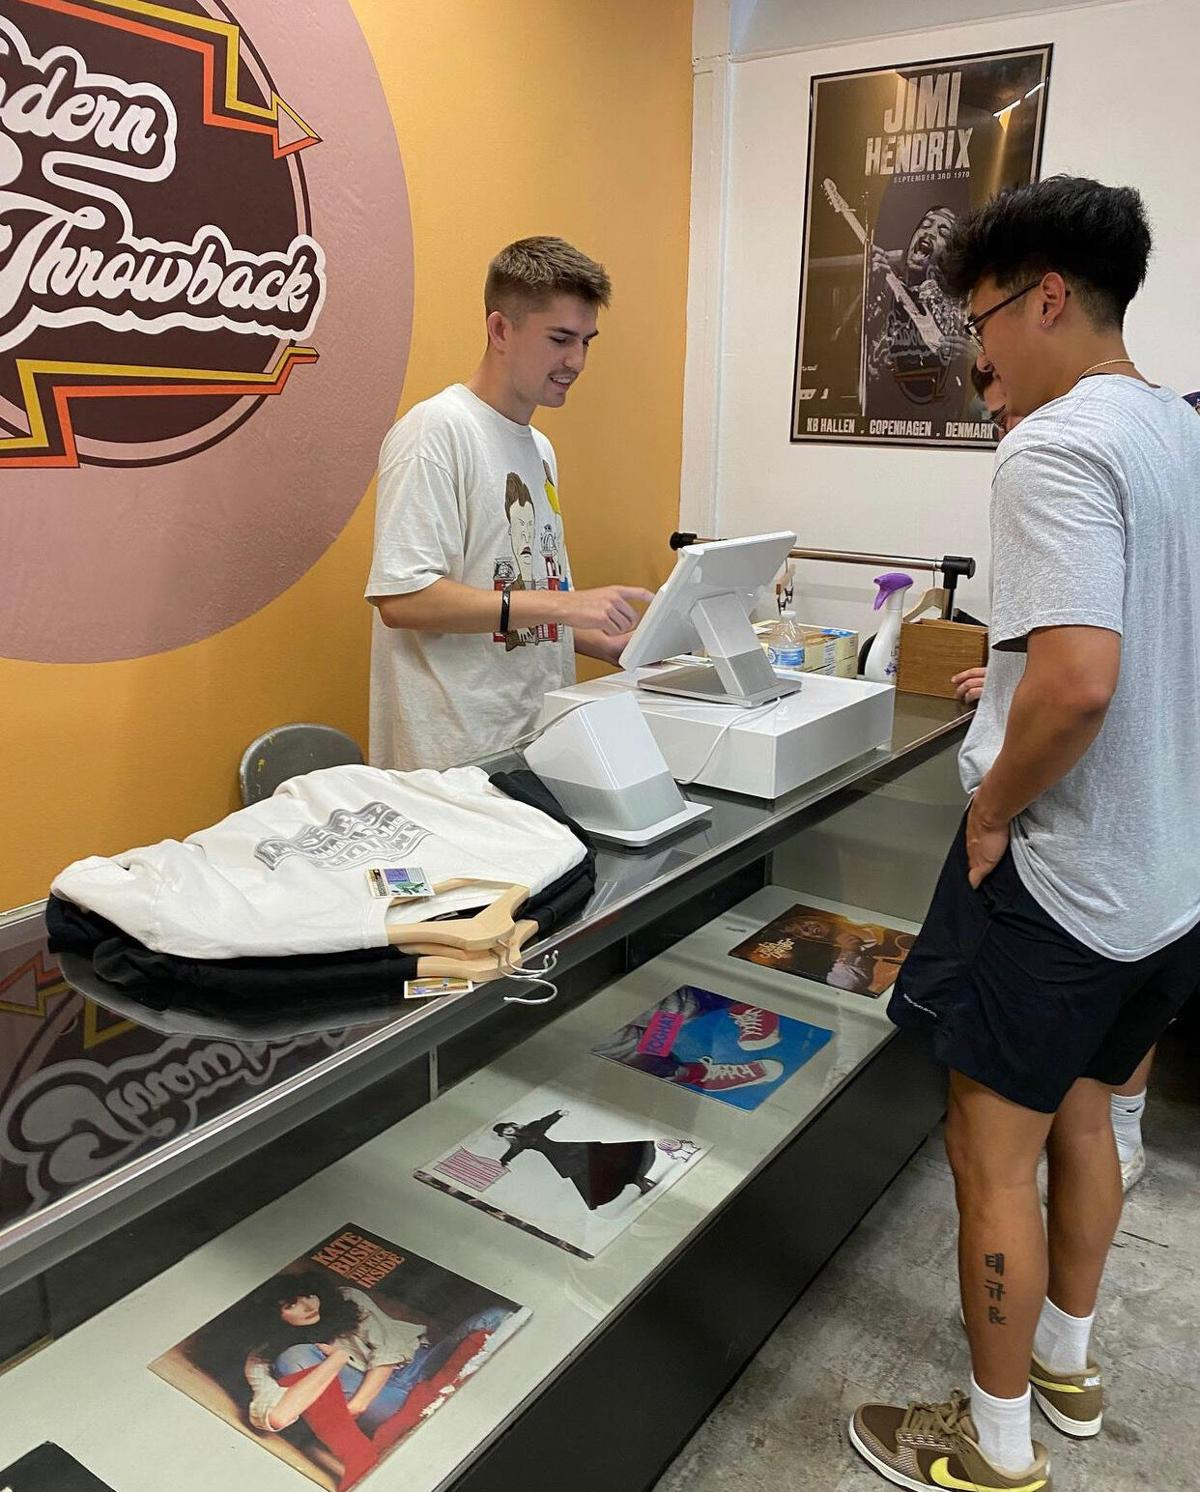 Alum checking out customer in new store